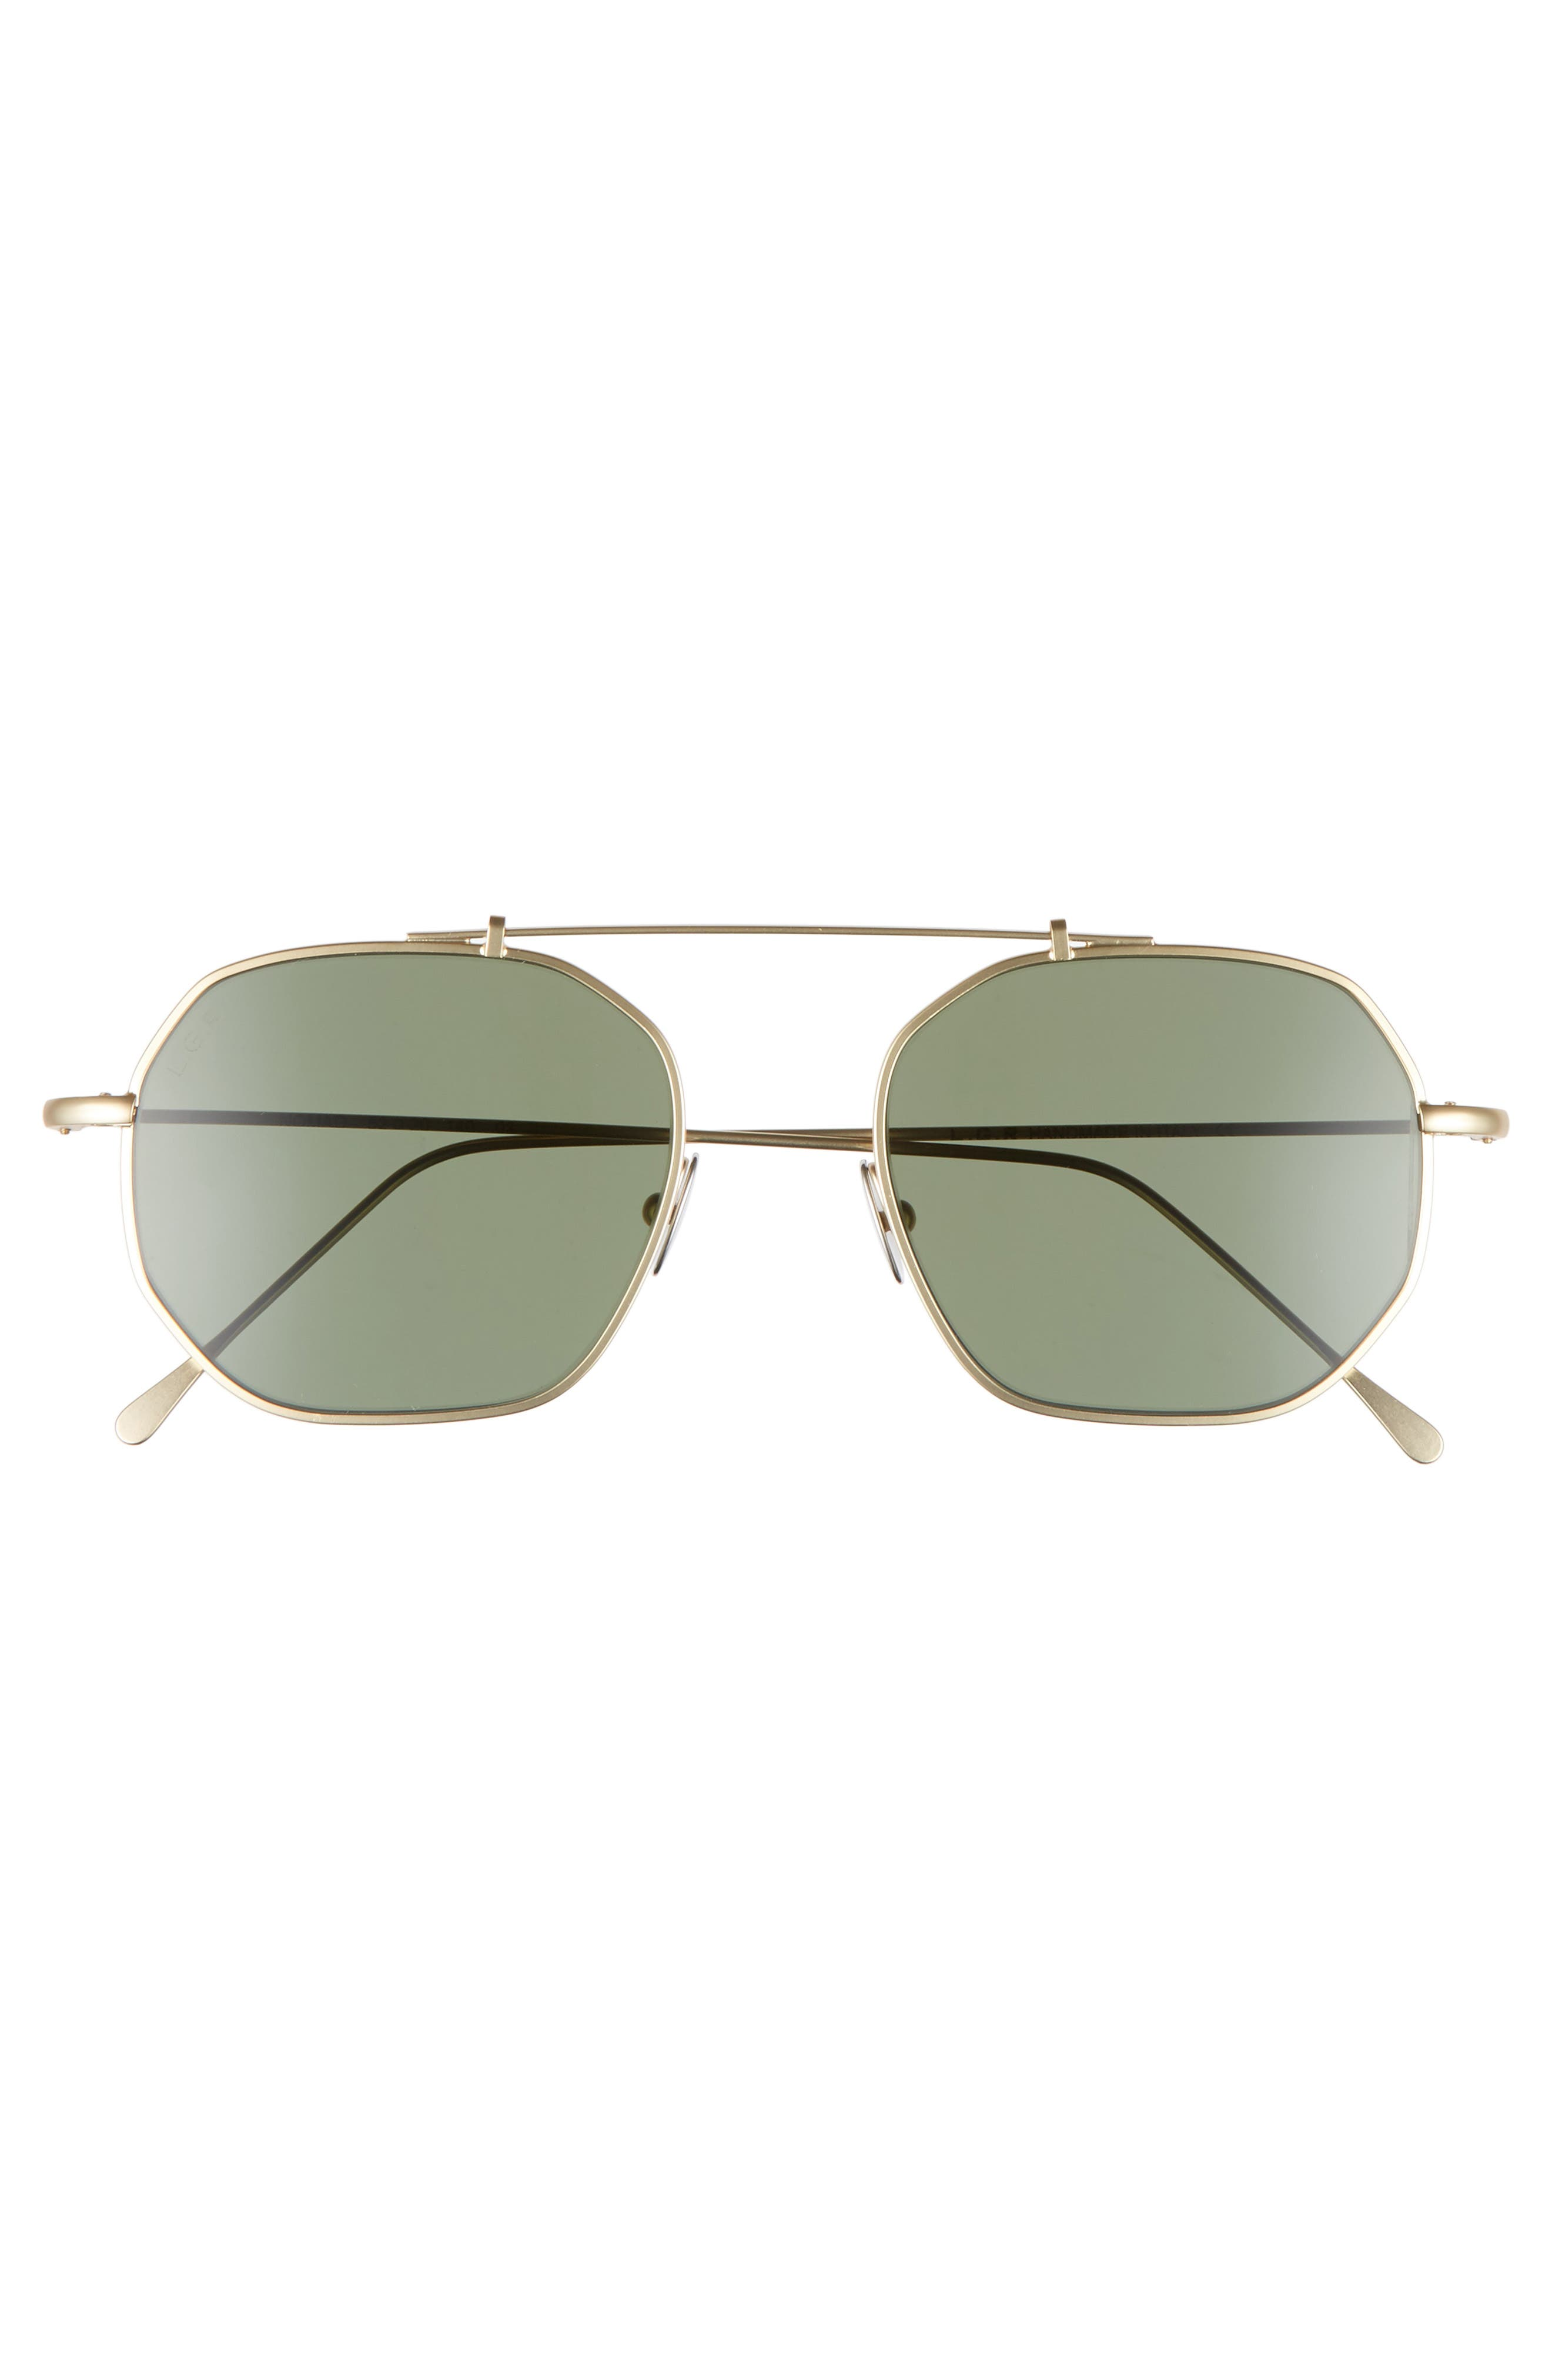 Nomad 52mm Sunglasses,                             Alternate thumbnail 2, color,                             Gold Matte/ Green